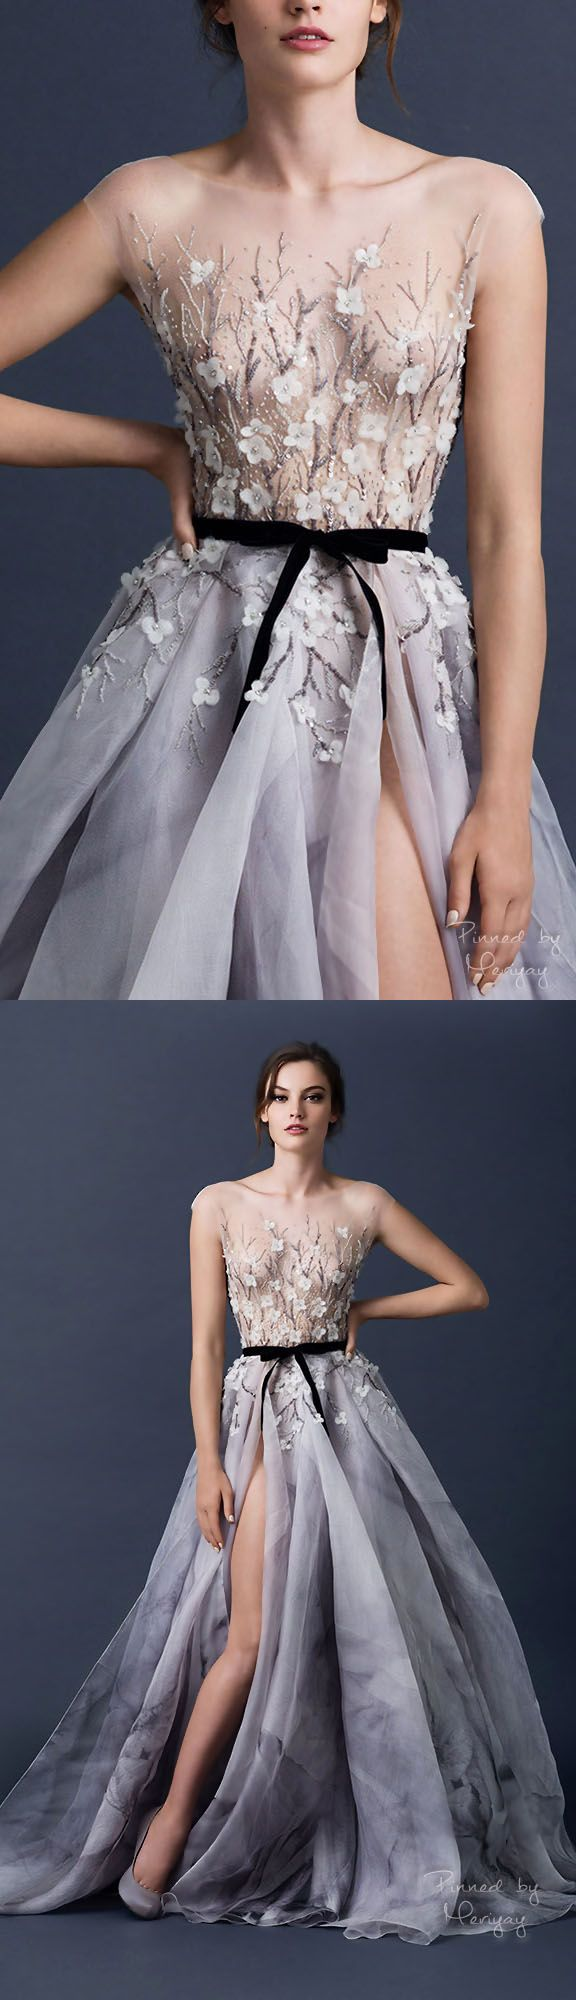 Paolo Sebastian 2015 - one of those things I'd probably never actually wear, but gorgeous nonetheless